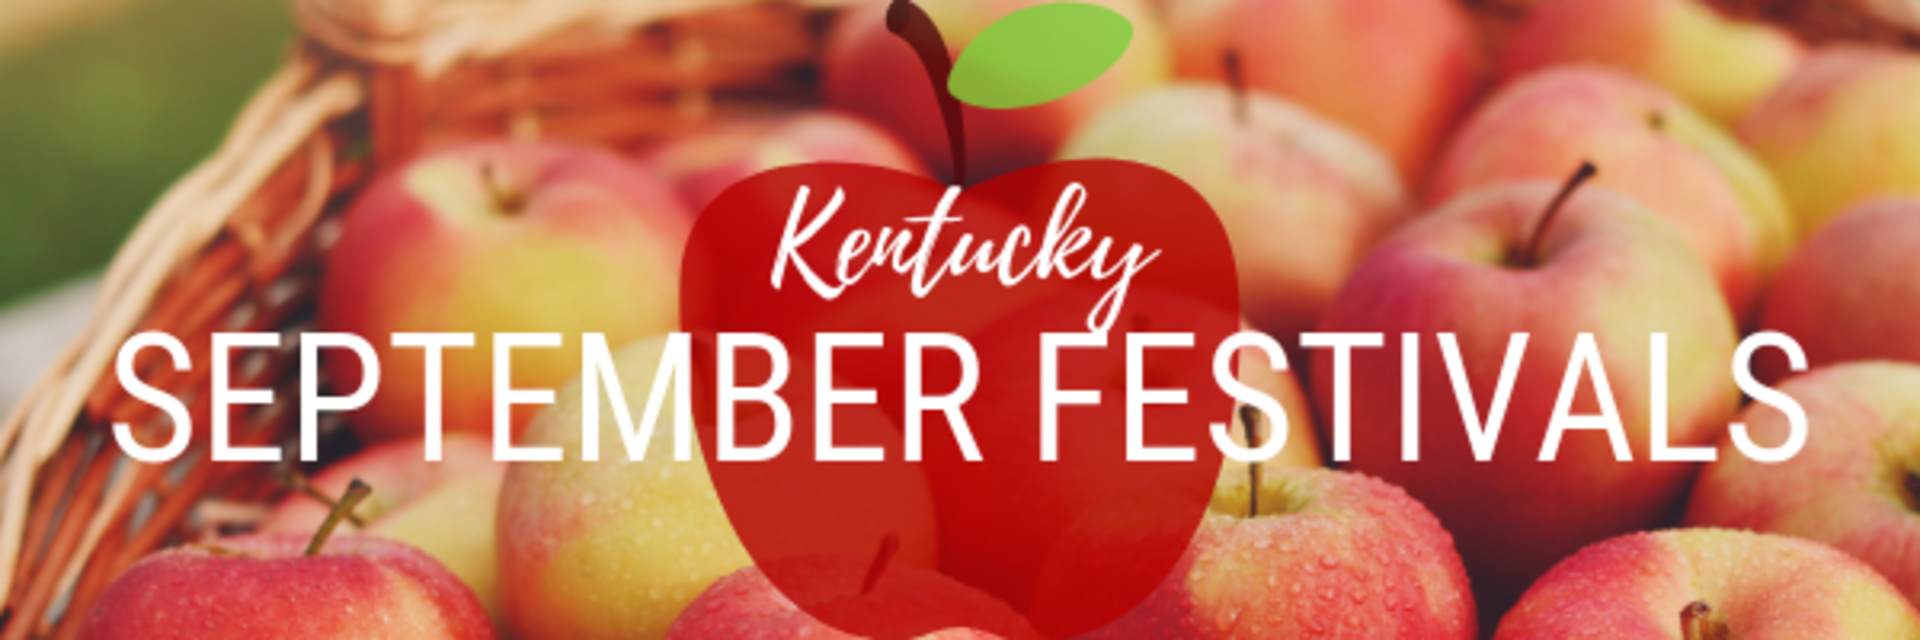 Things to do in Kentucky in September